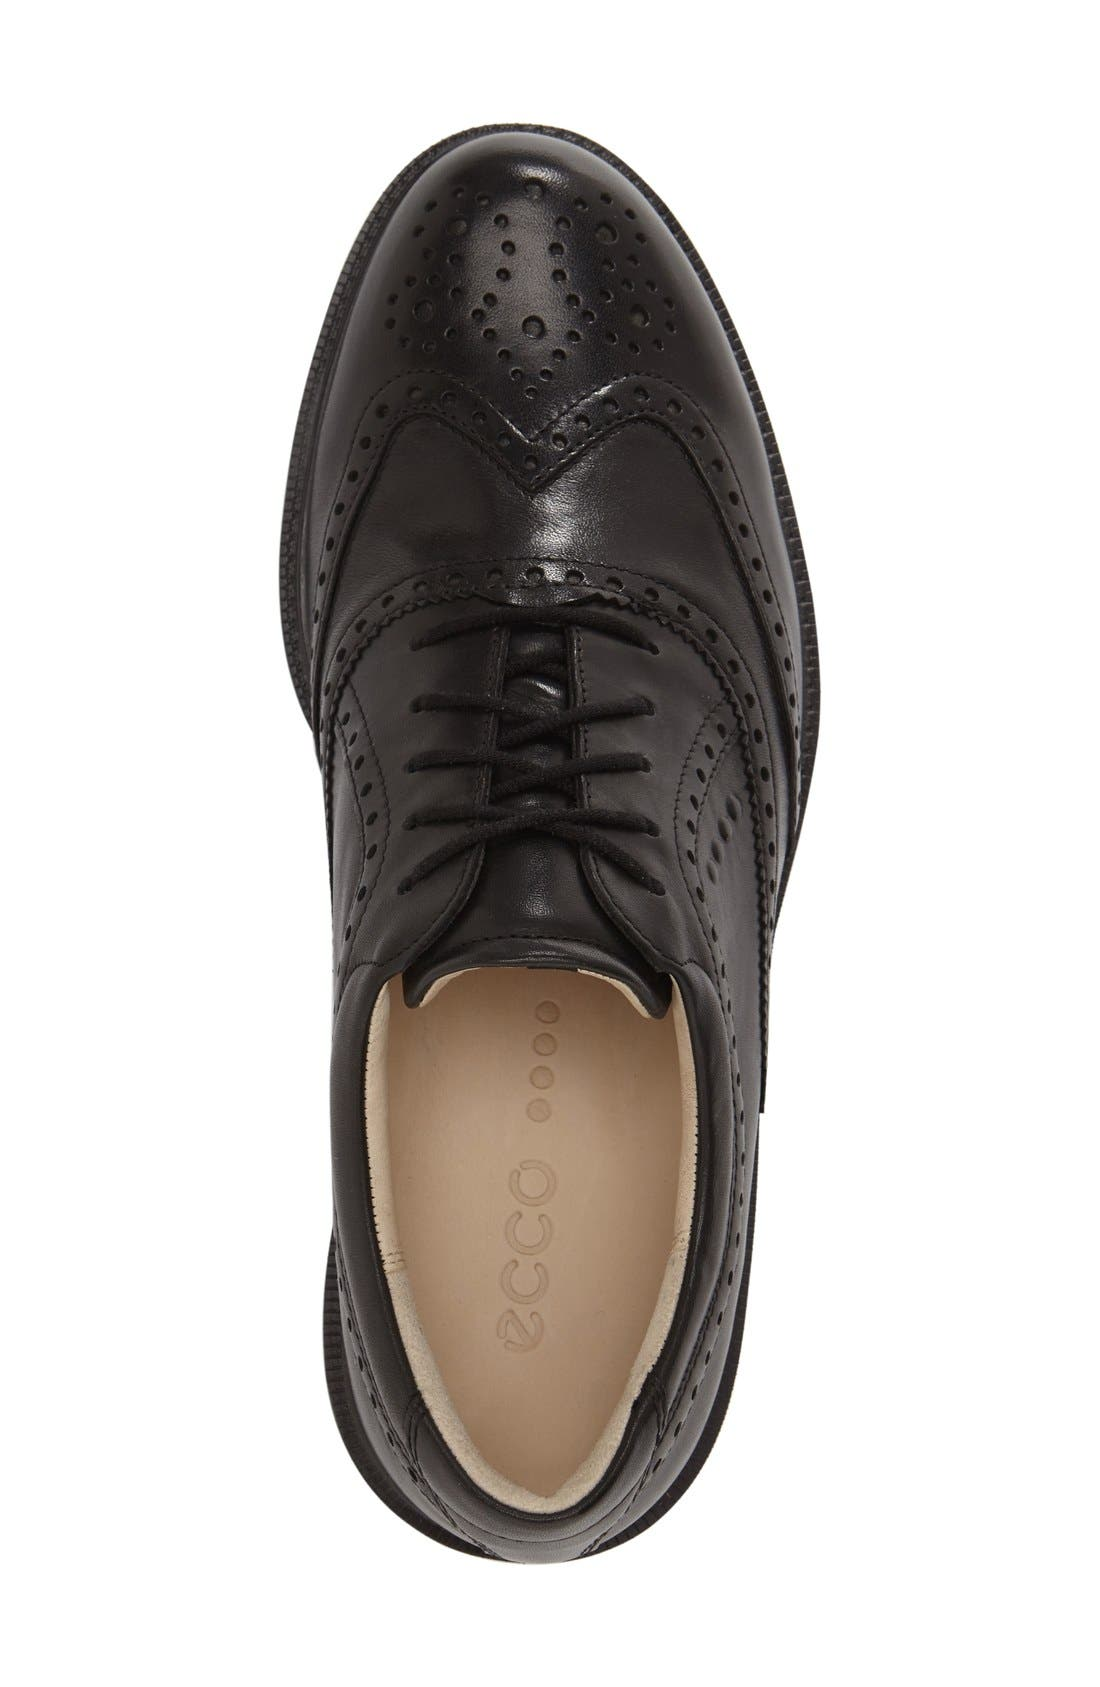 'Tour' Hybrid Wingtip Golf Shoe,                             Alternate thumbnail 2, color,                             011